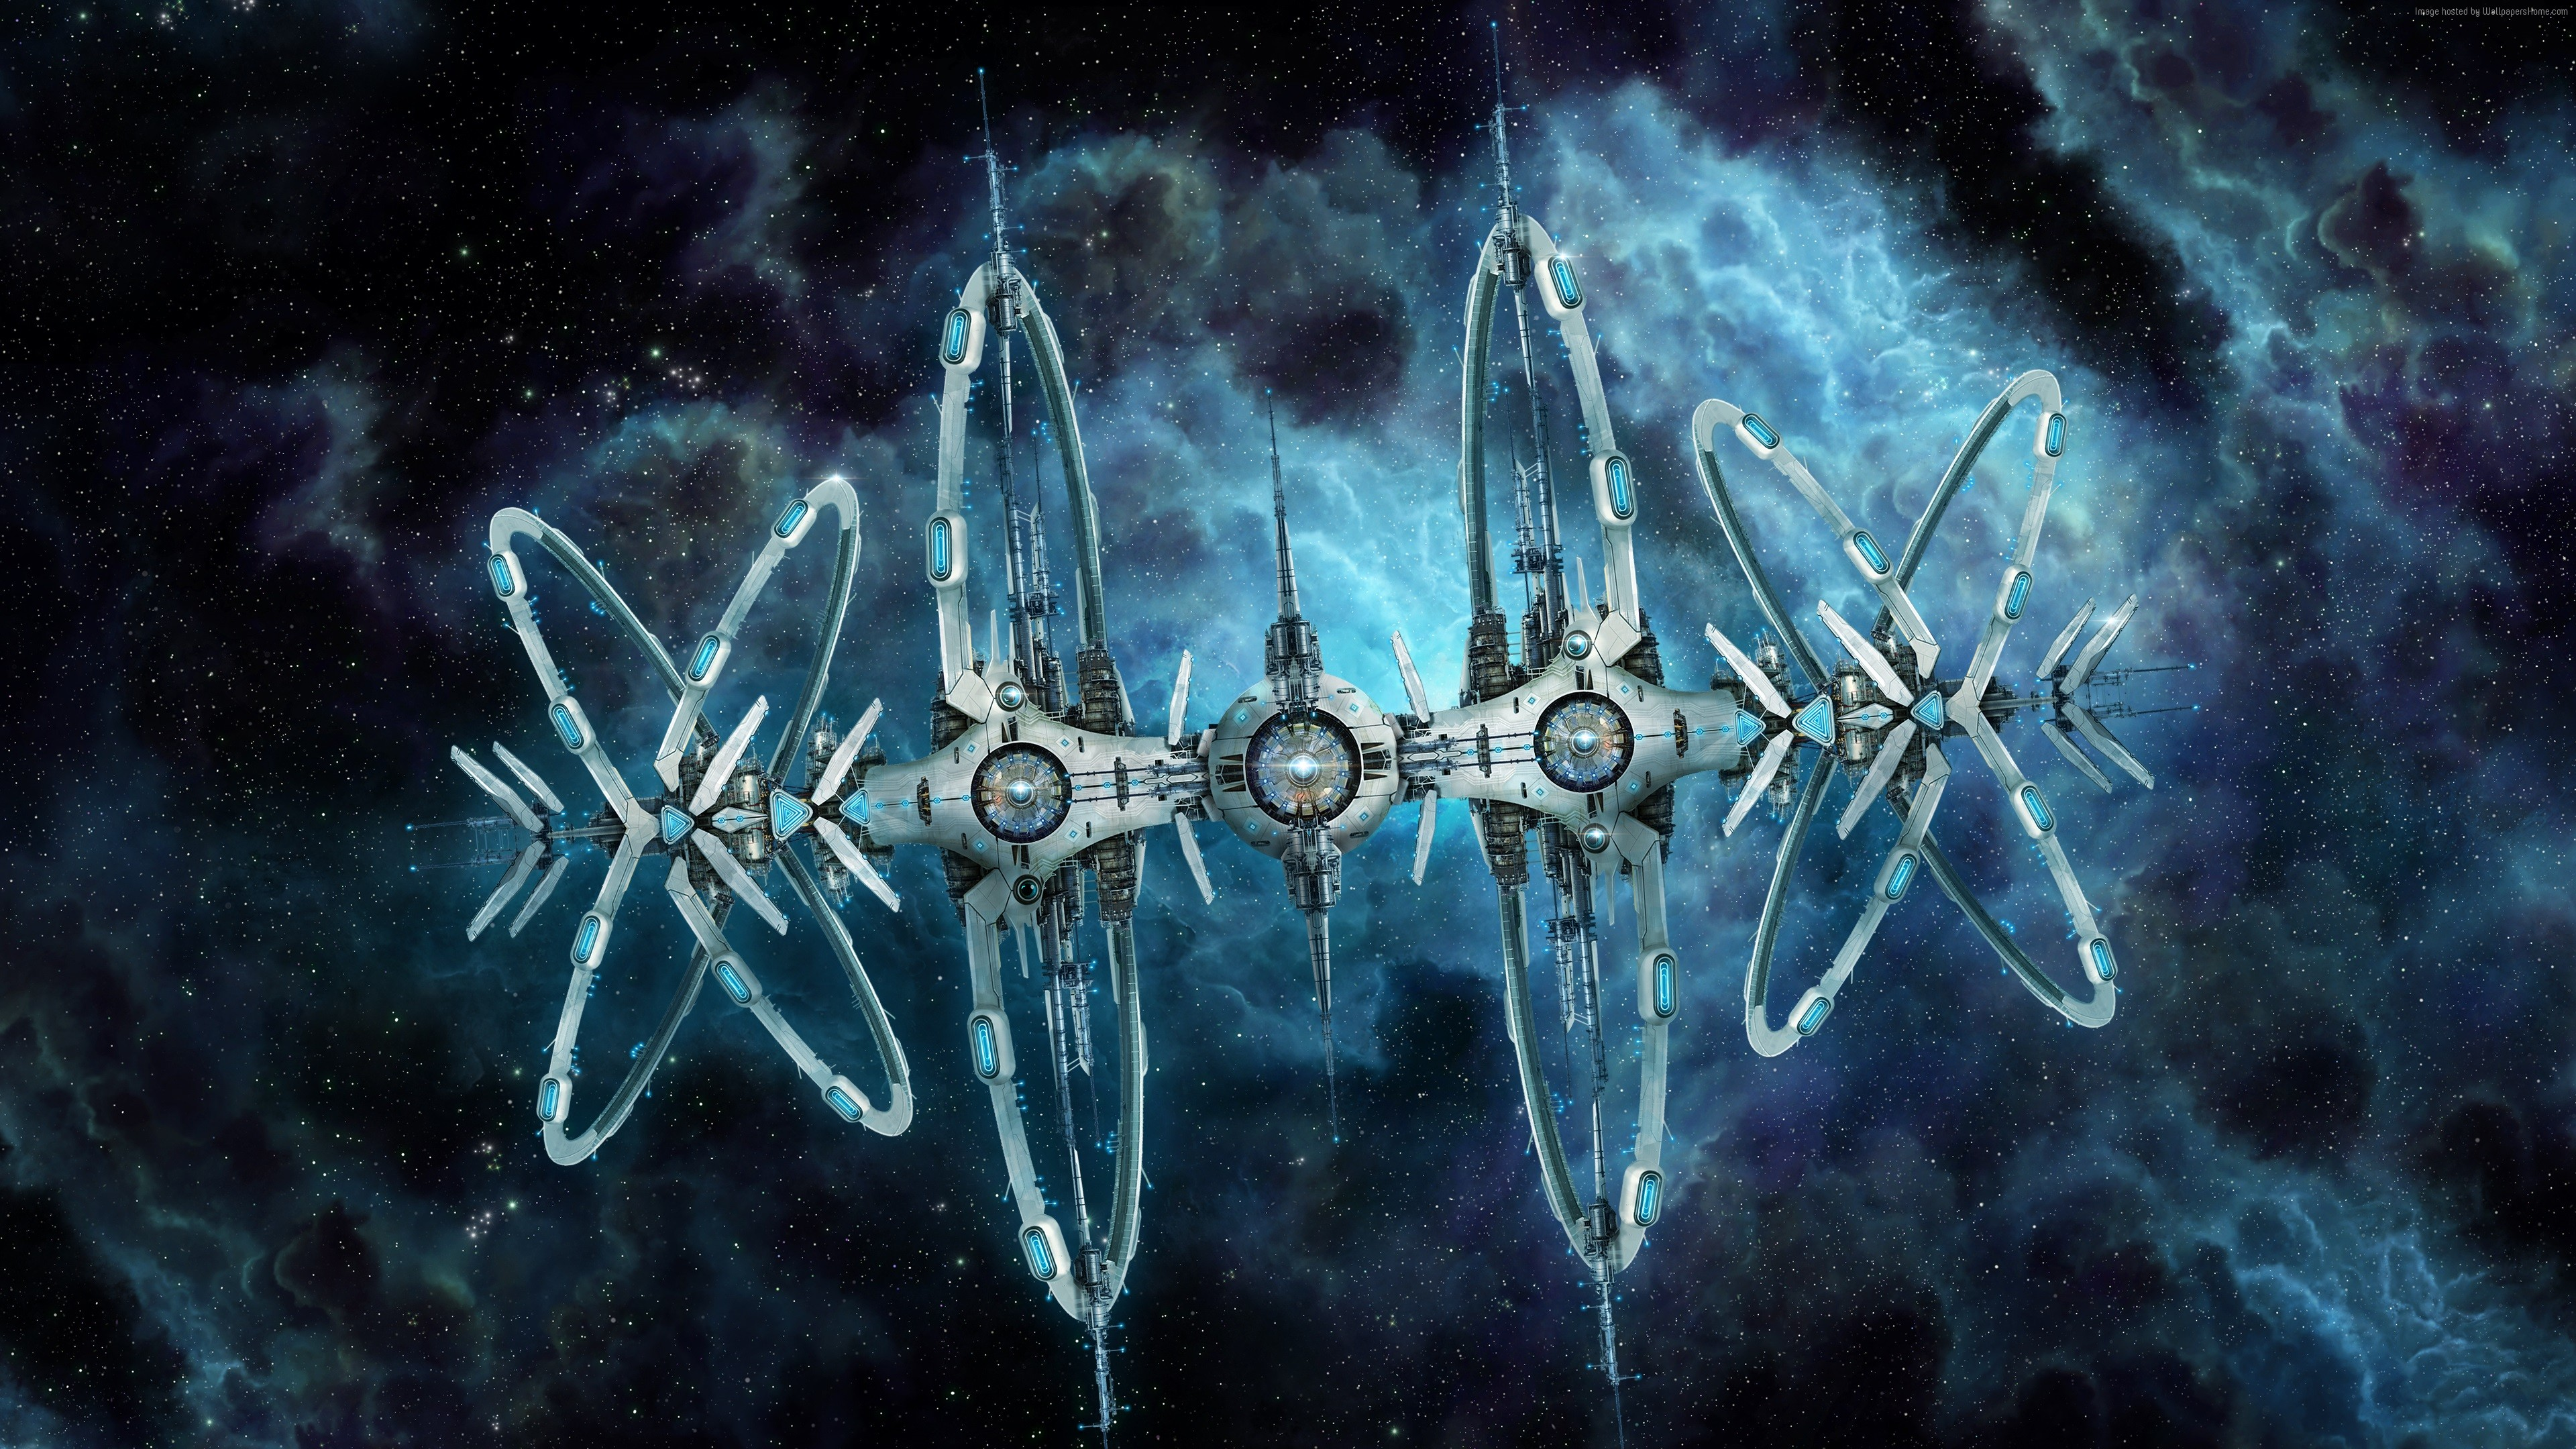 Wallpaper Starpoint Gemini 2 game SPG SP space station 3840x2160